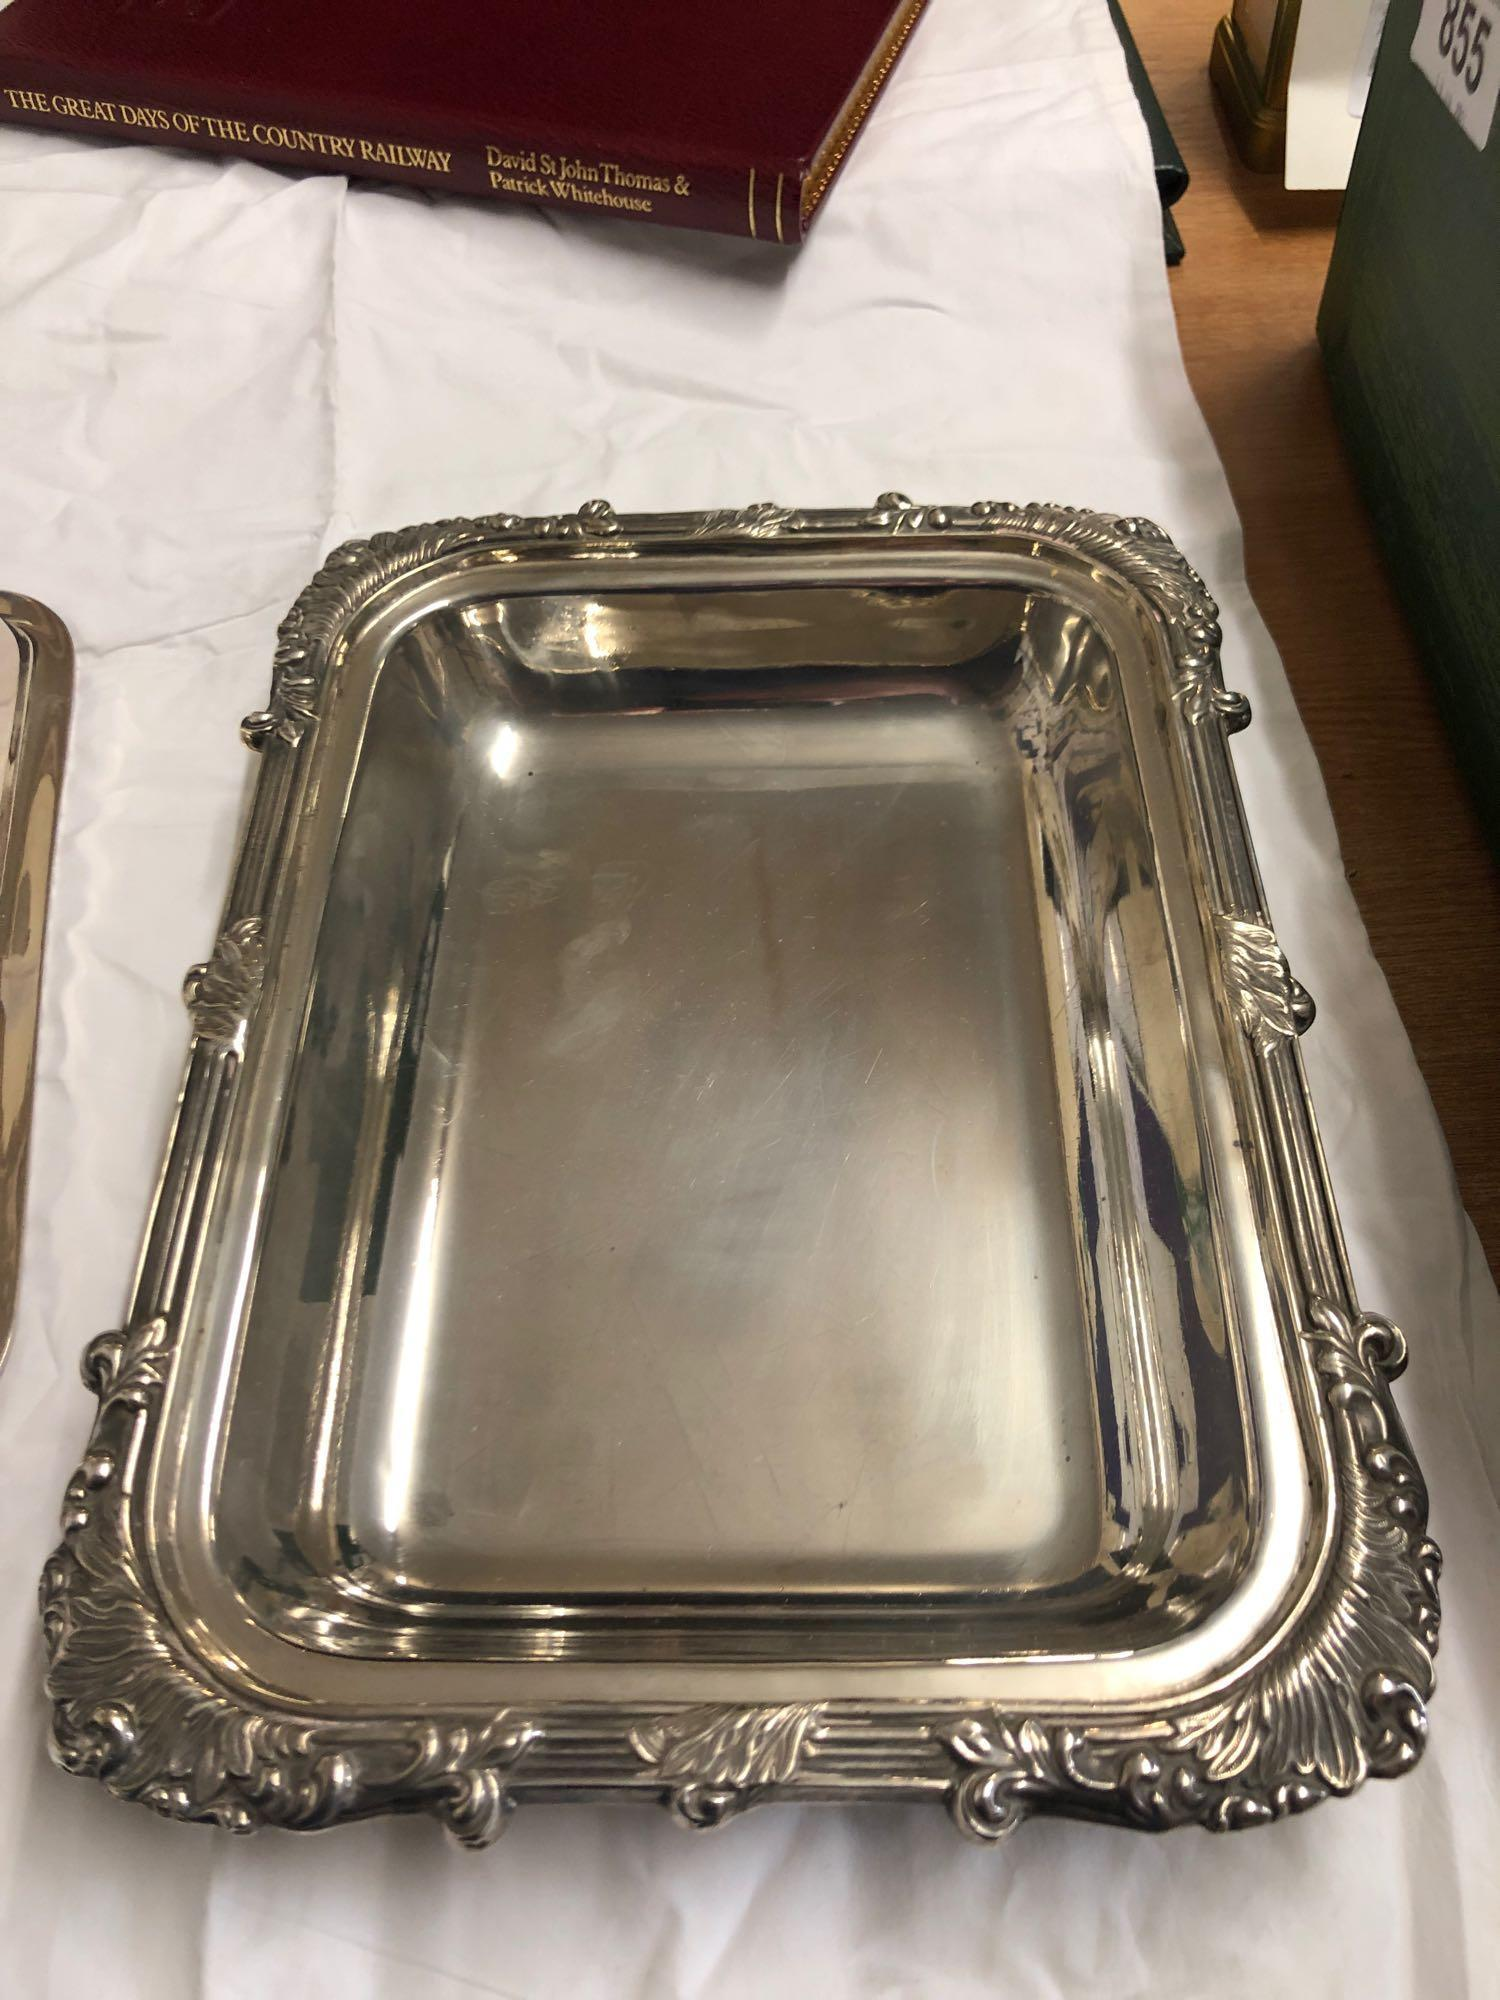 SILVER ENTREE DISH & COVER - Image 4 of 7